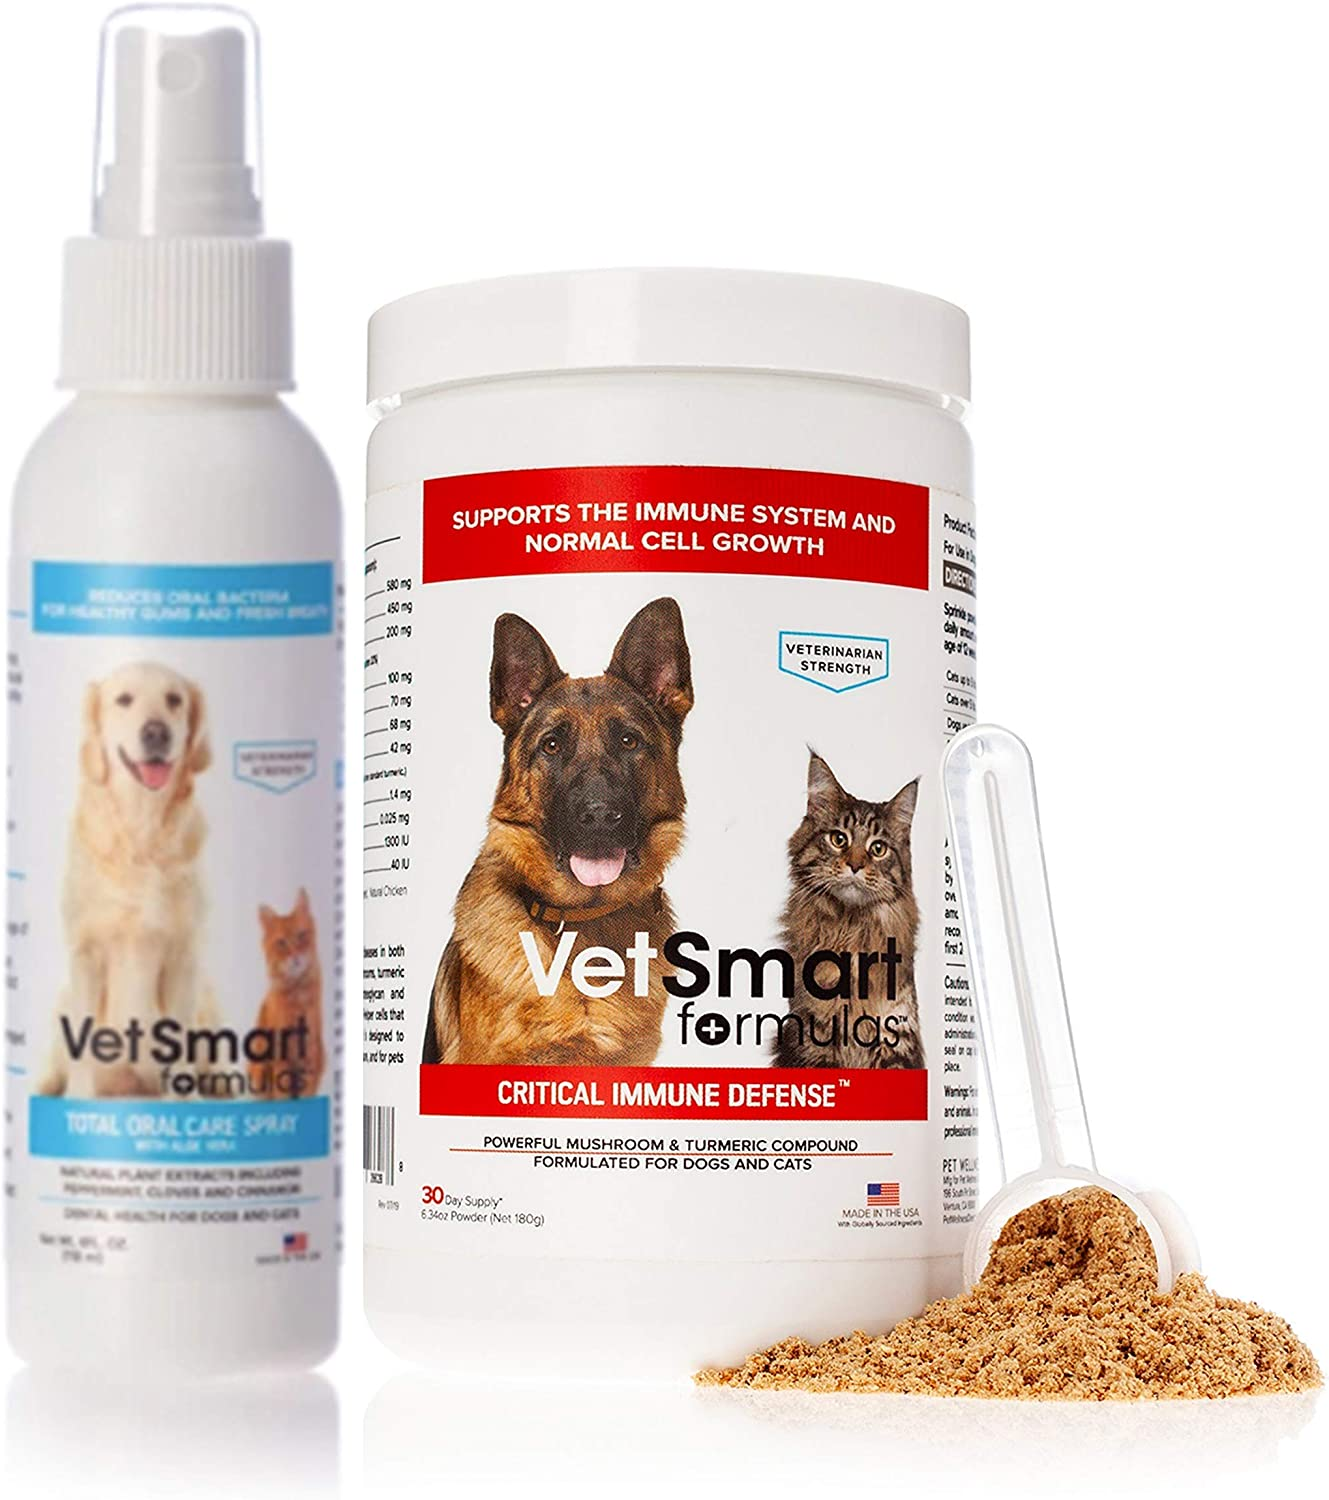 VetSmart Formulas Critical Immune Defense Bundled with Total Oral Care Spray for Dogs and Cats